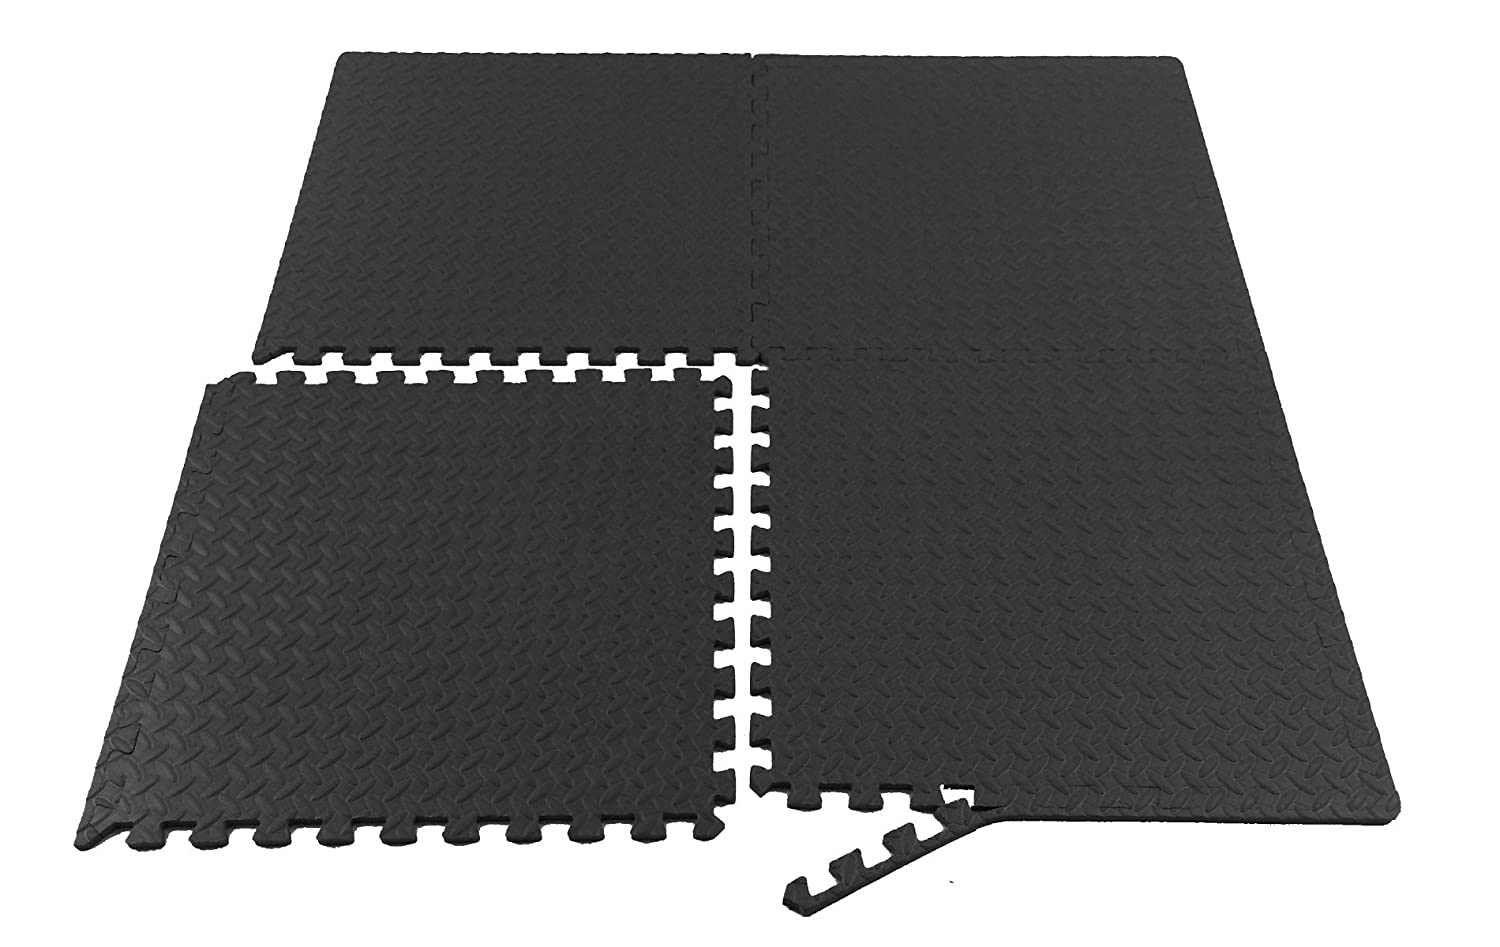 Rubber floor mats workout - Amazon Com Prosource Fs 1908 Pzzl Puzzle Exercise Mat Eva Foam Interlocking Tiles Black 24 Square Feet Sports Outdoors